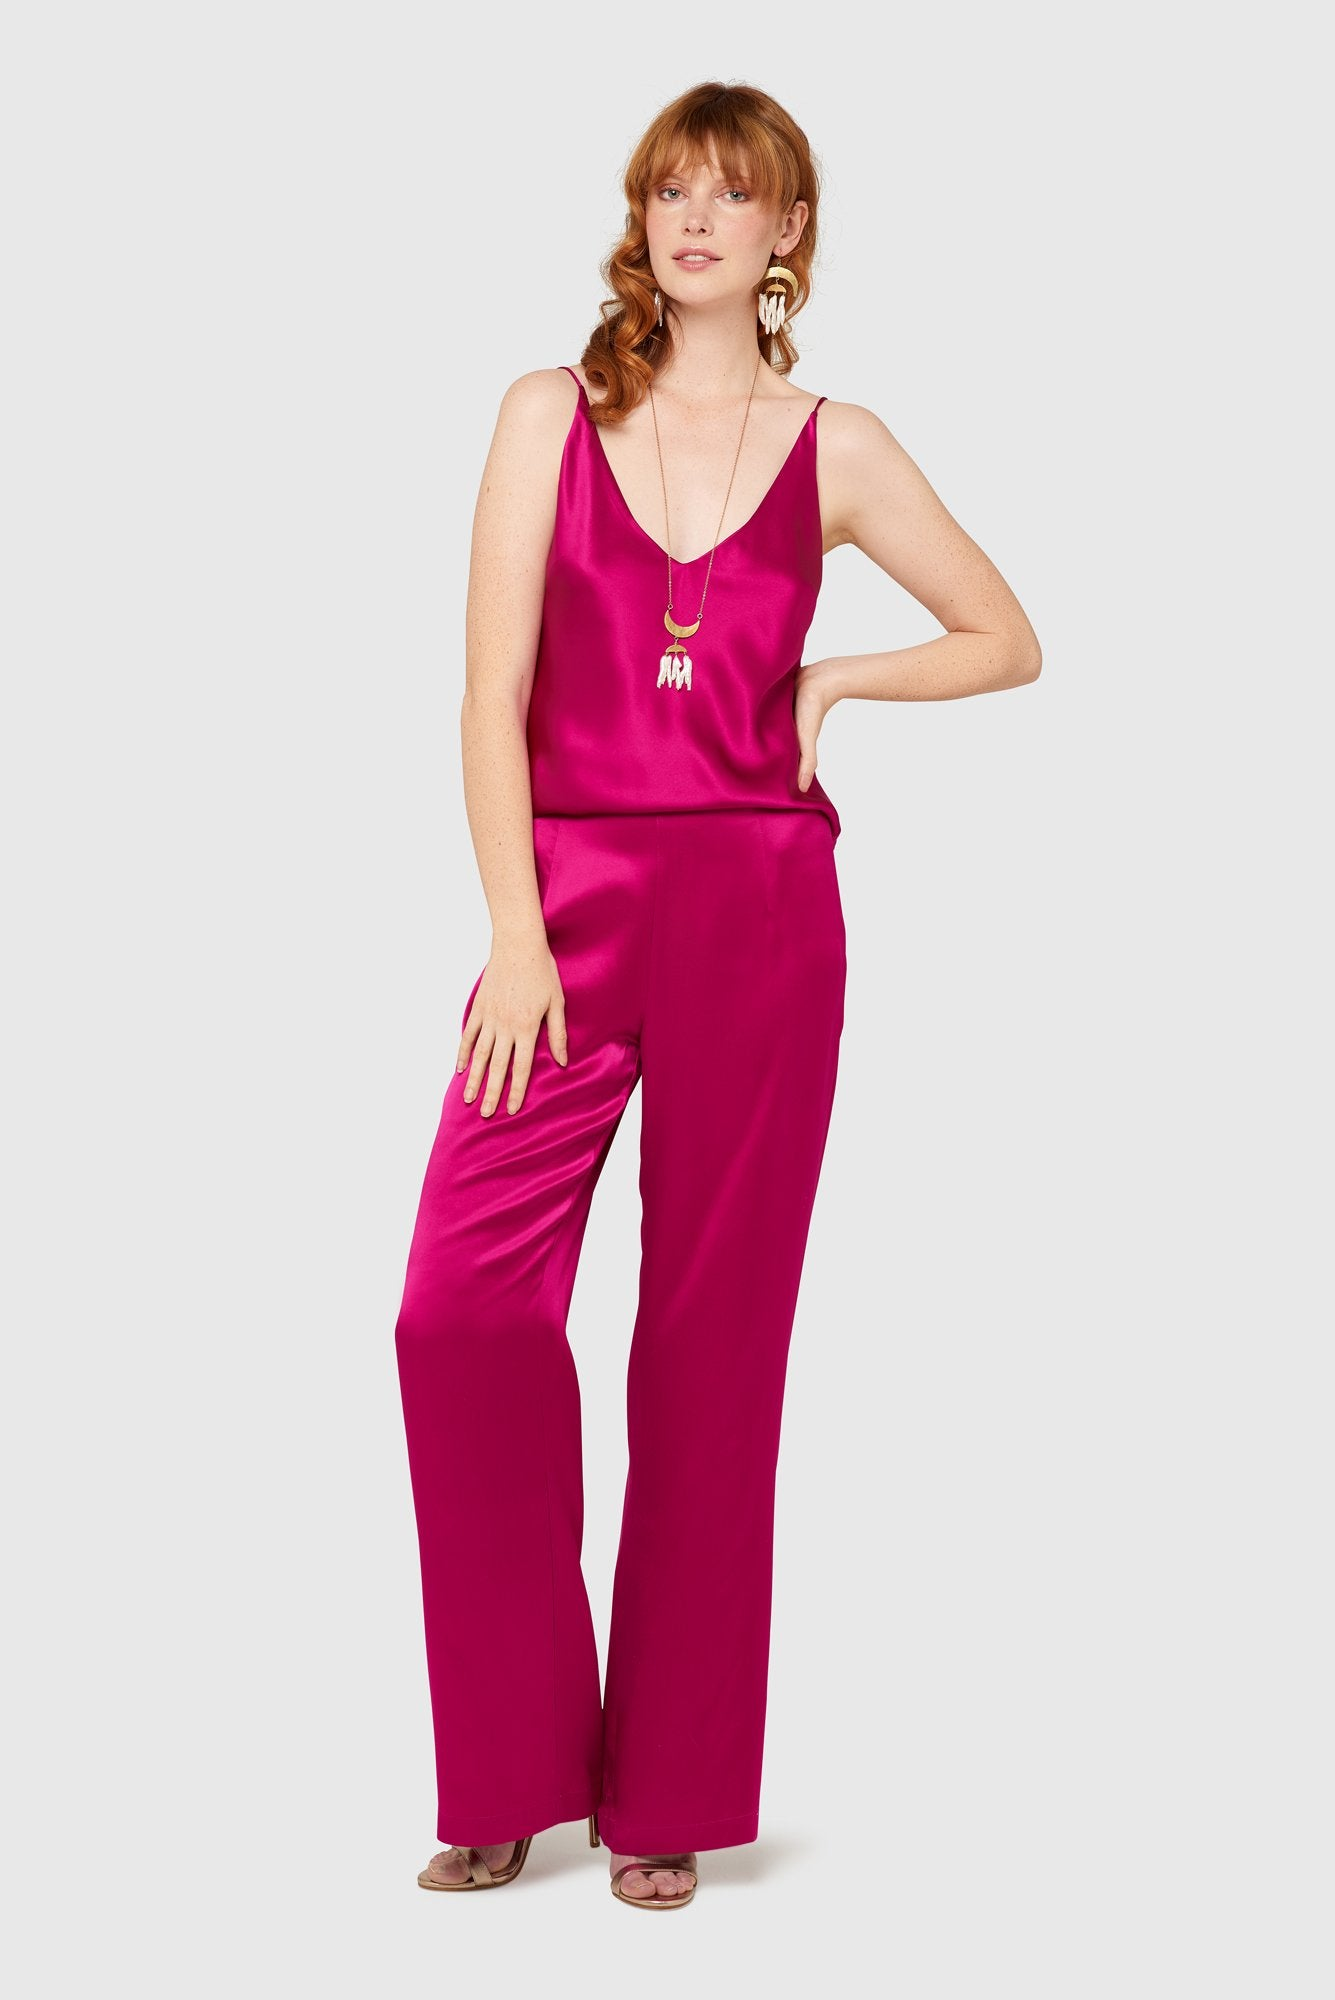 Cerise High Waisted Silk Lounge Pants Pants The Fashion Advocate ethical Australian fashion designer boutique Melbourne sustainable clothes